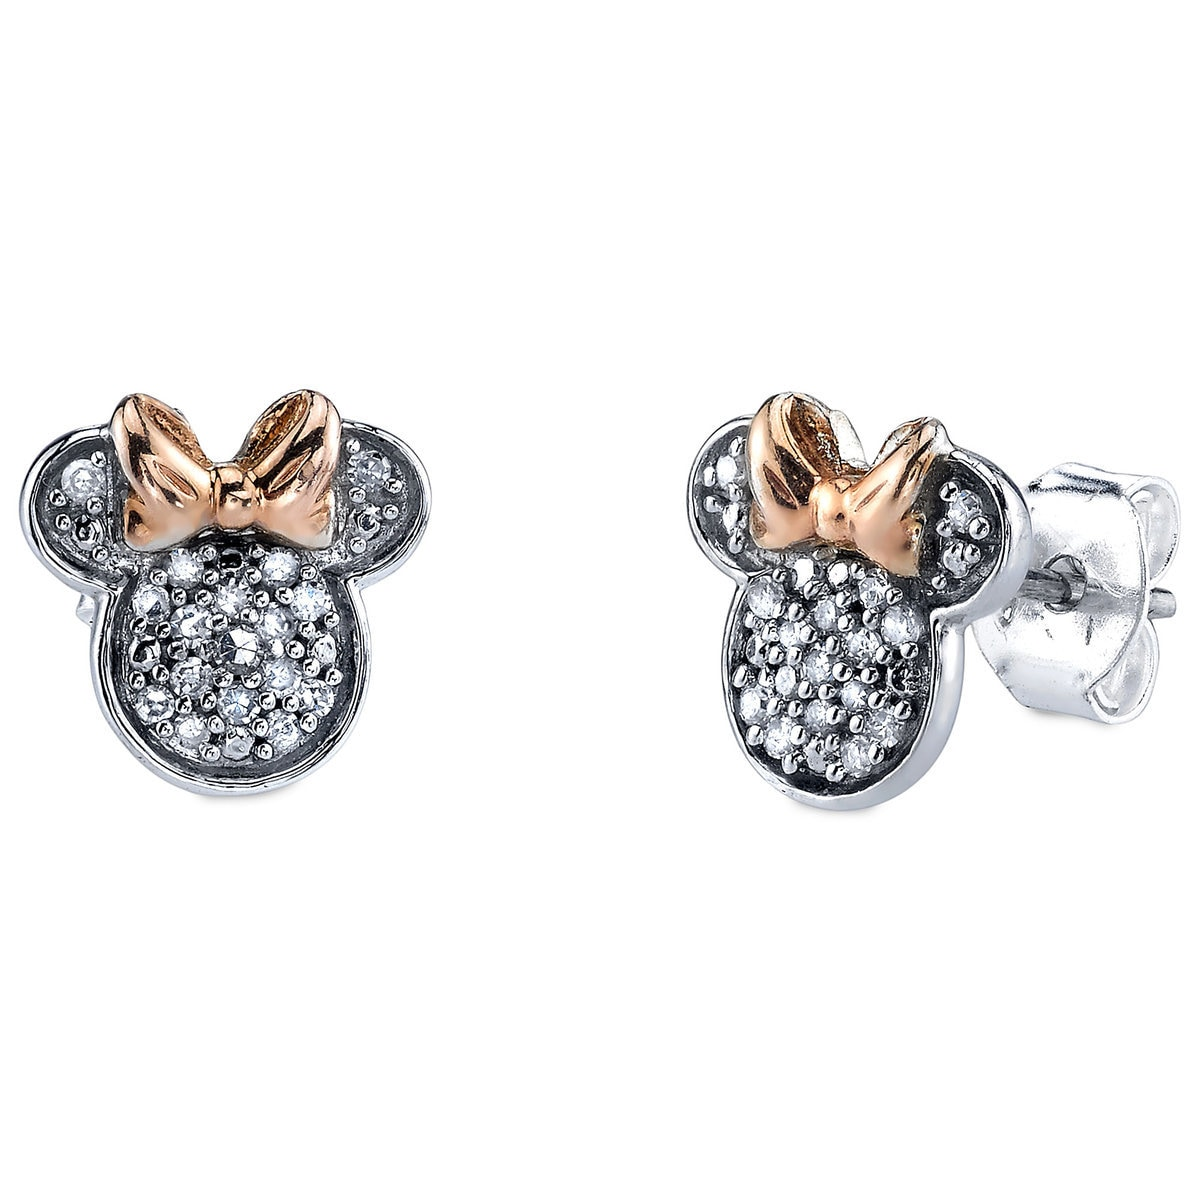 img earrings lizaneya diamond jewellery shoping product lightbox online portal